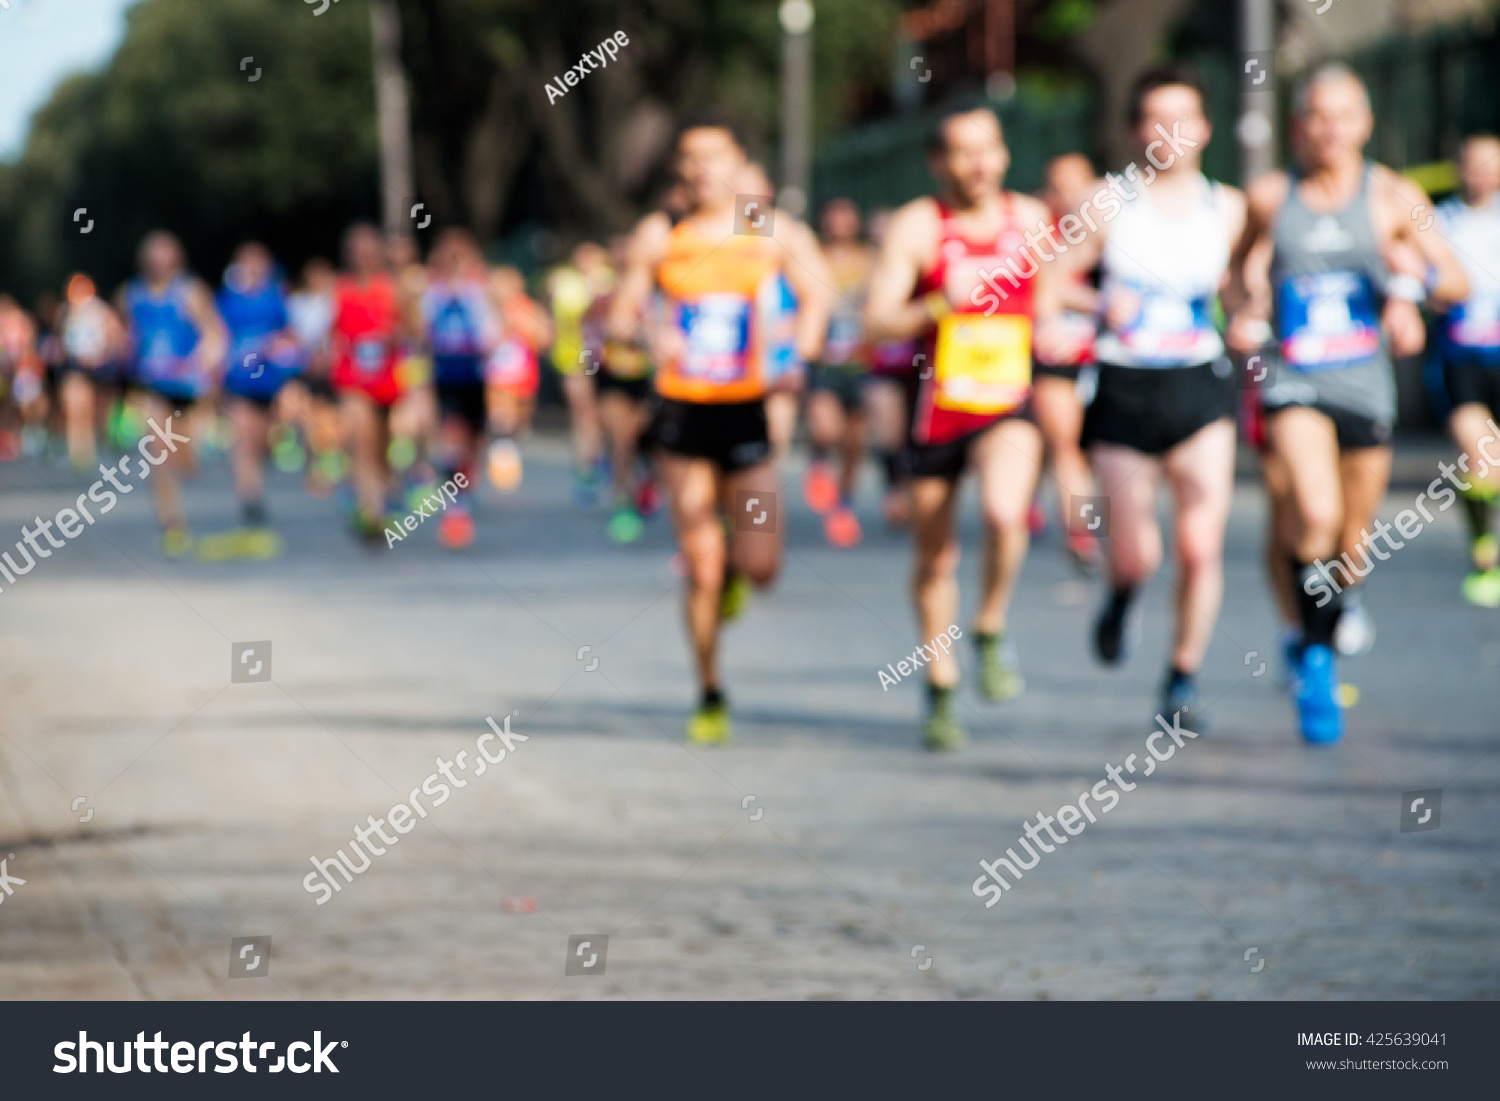 group of marathon runners, abstract blurry picture #425639041